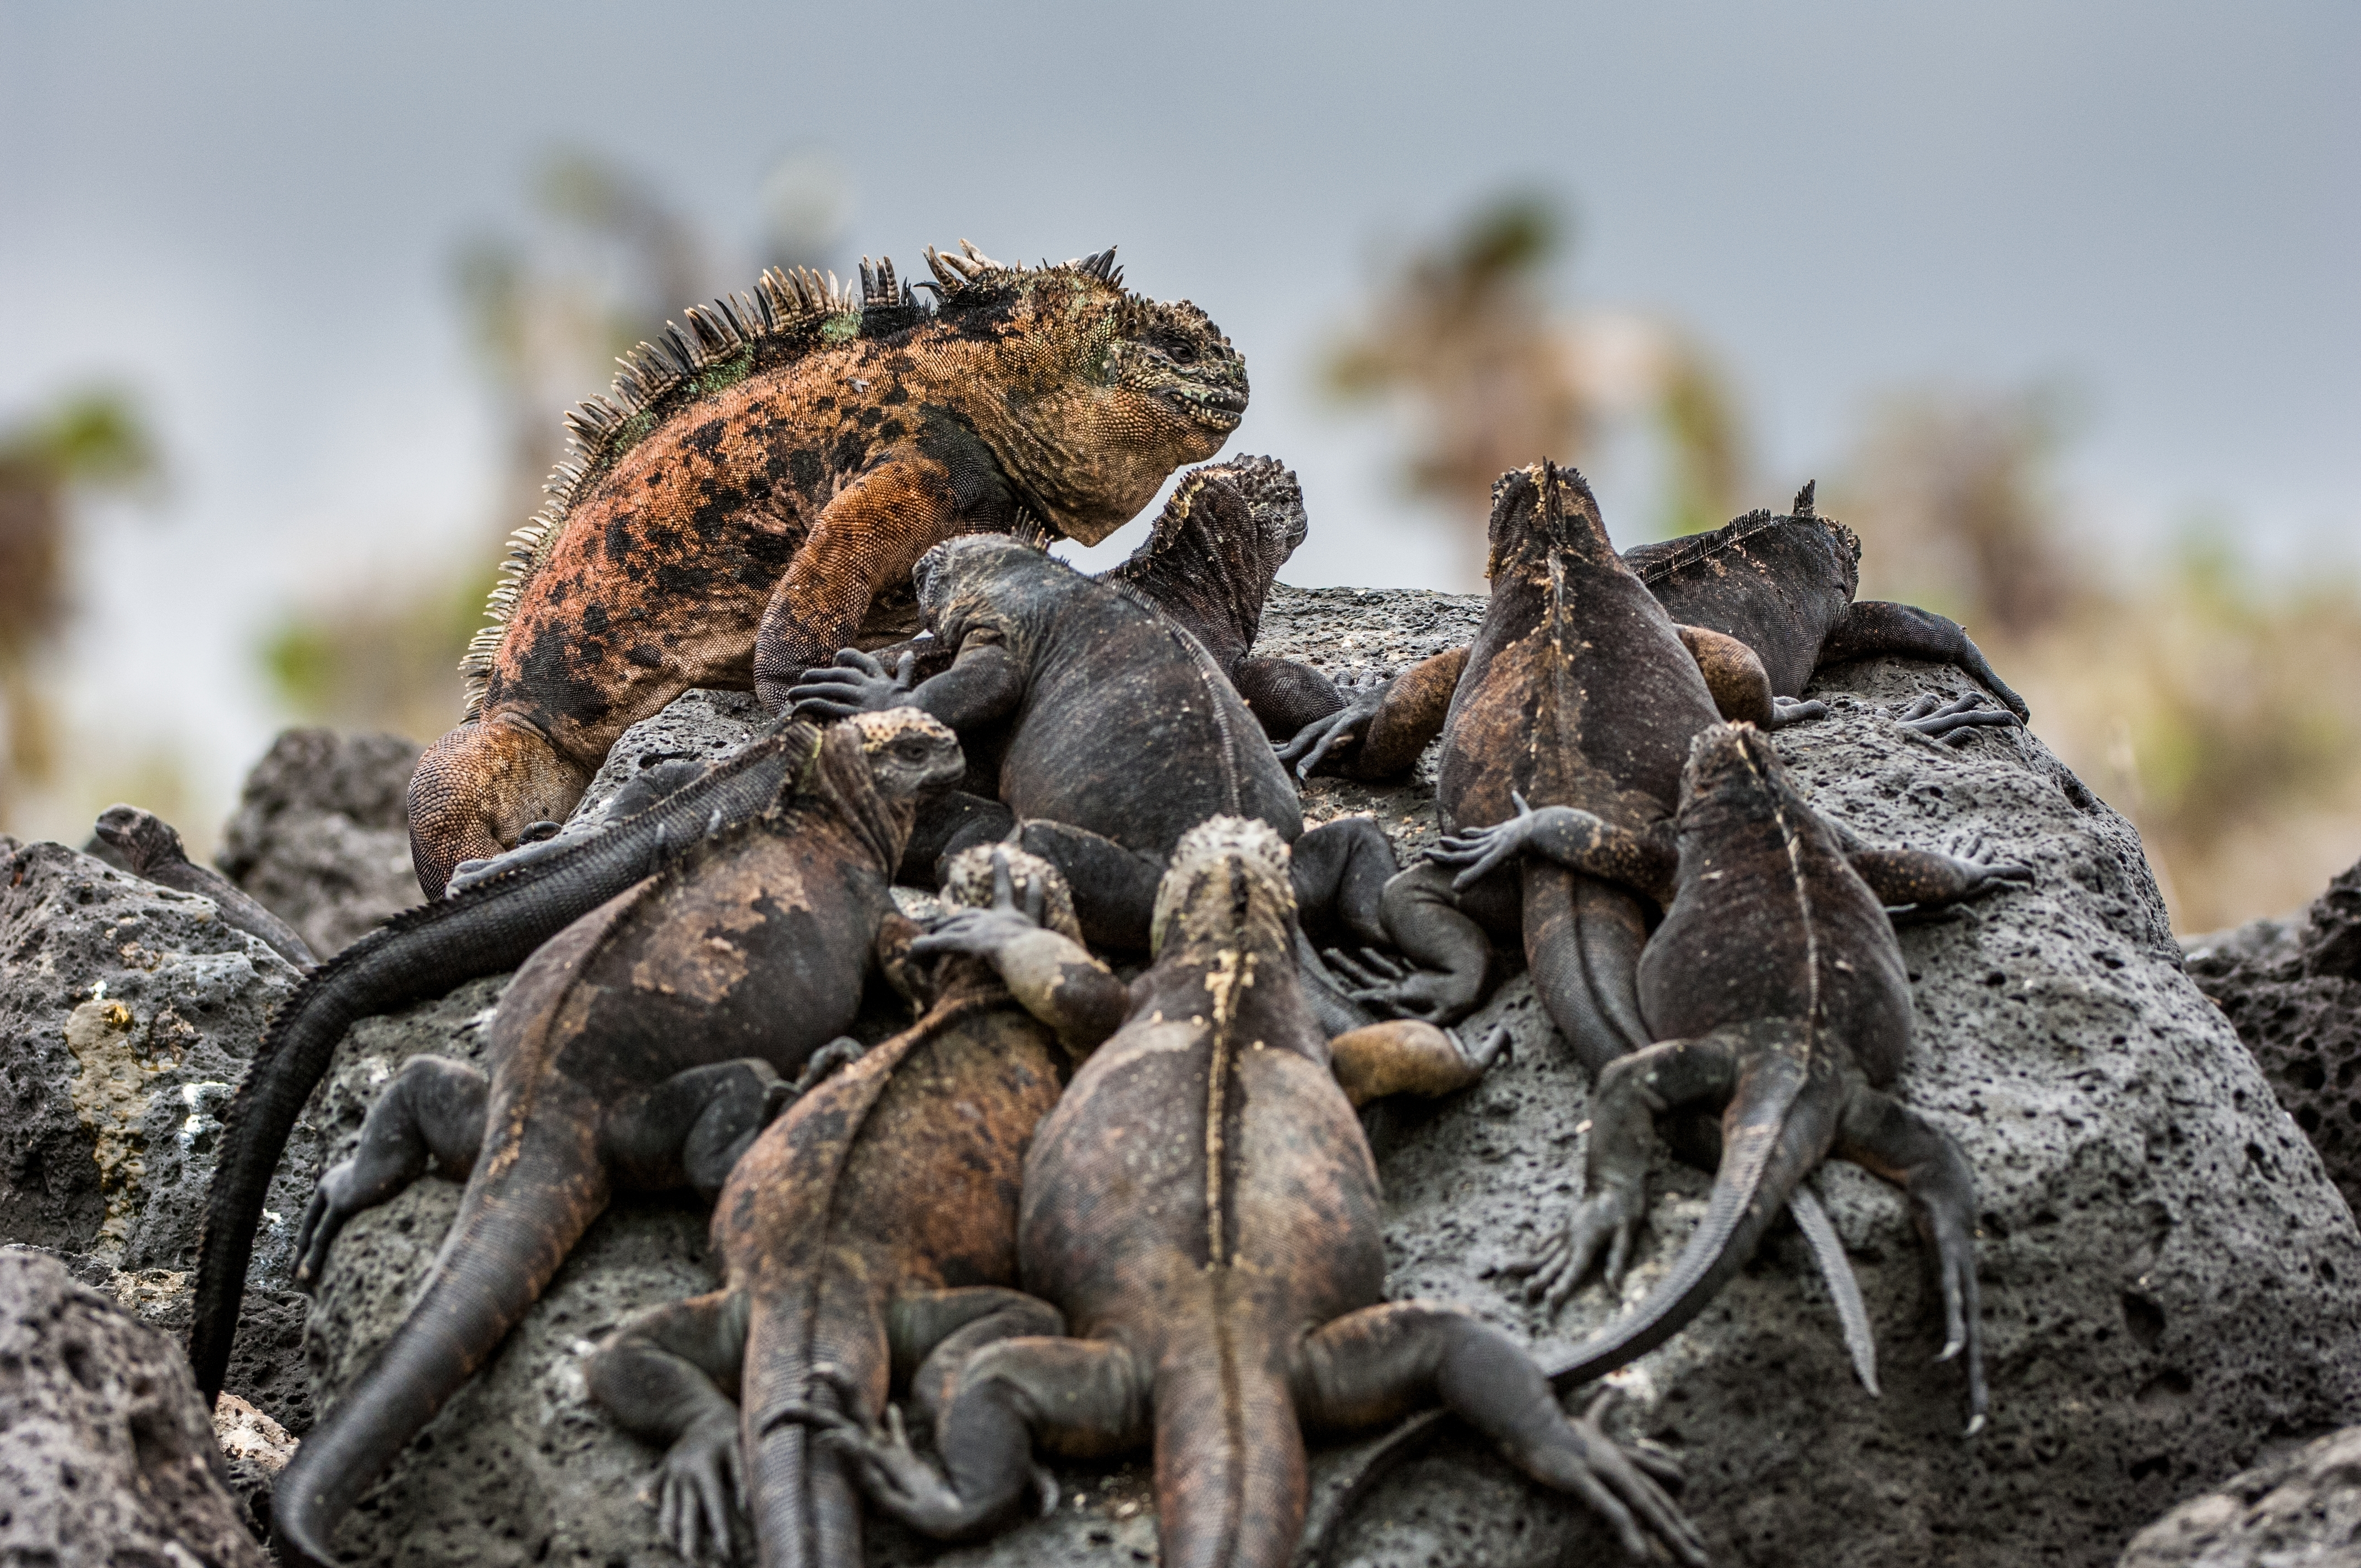 A male and females of Galapagos Marine Iguana resting on black stiffened lava rocks on the Galapagos Islands